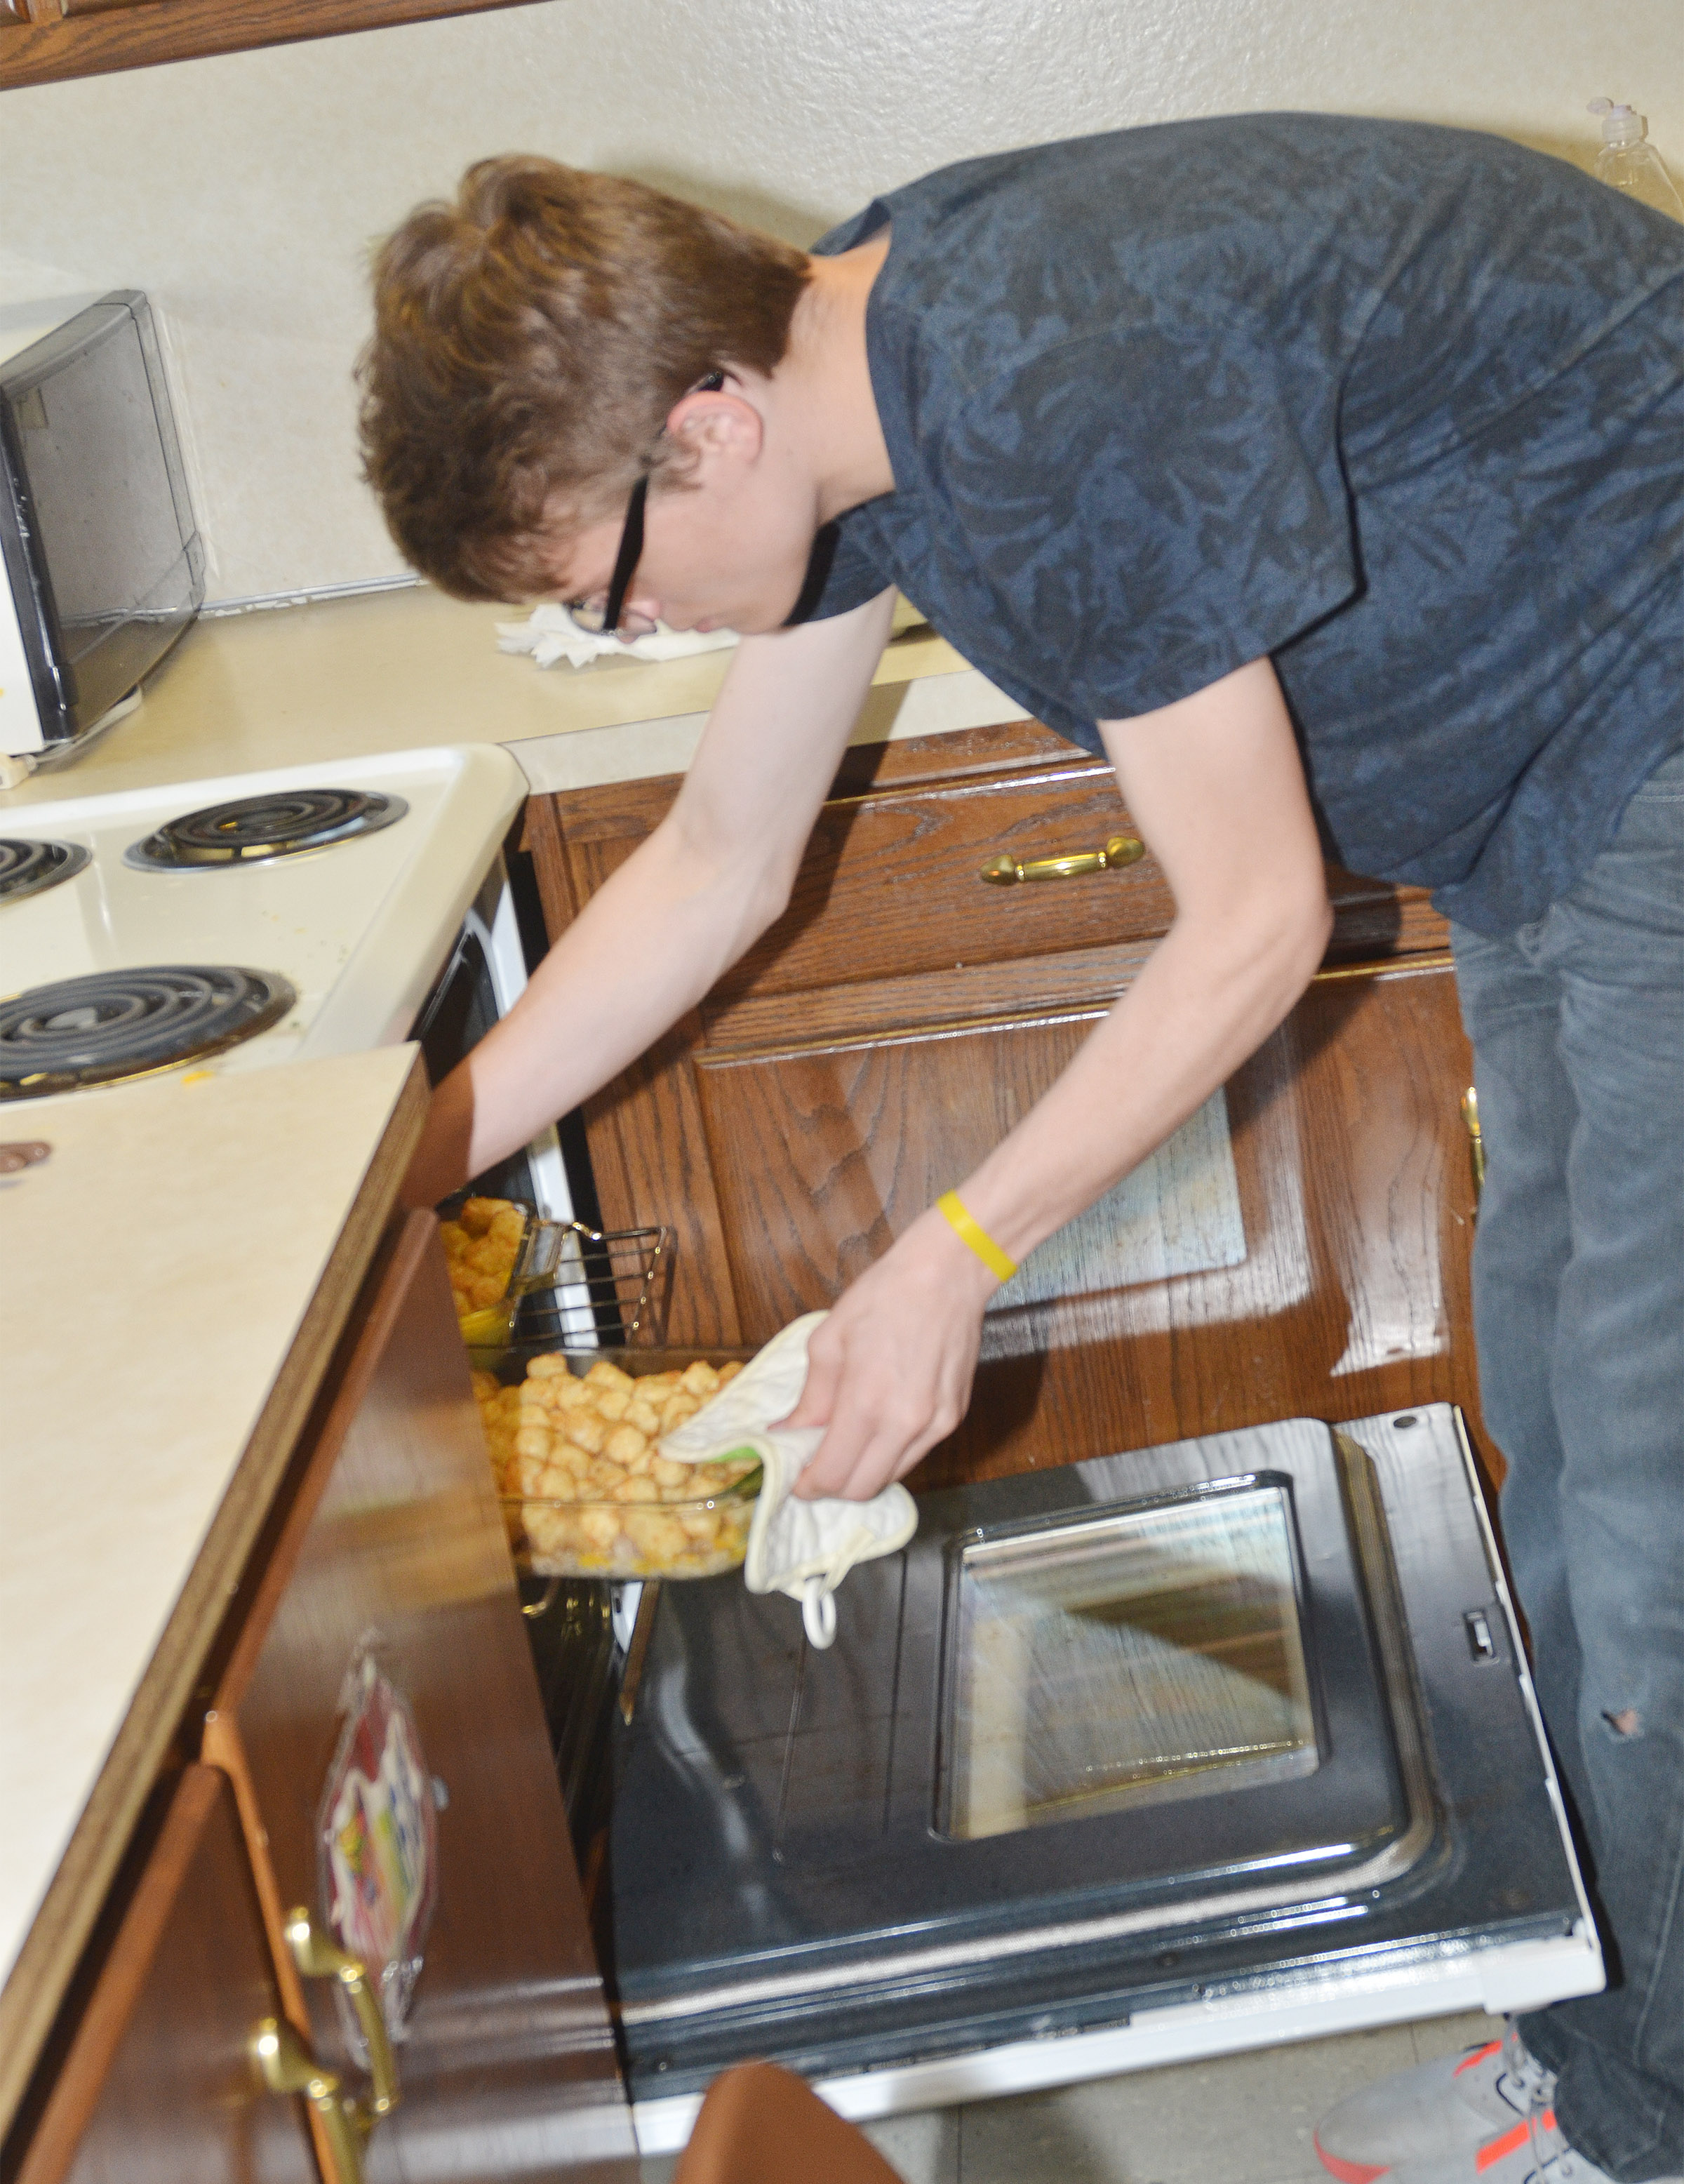 CHS sophomore Joe Pipes checks on his breakfast casserole he made for his final project.